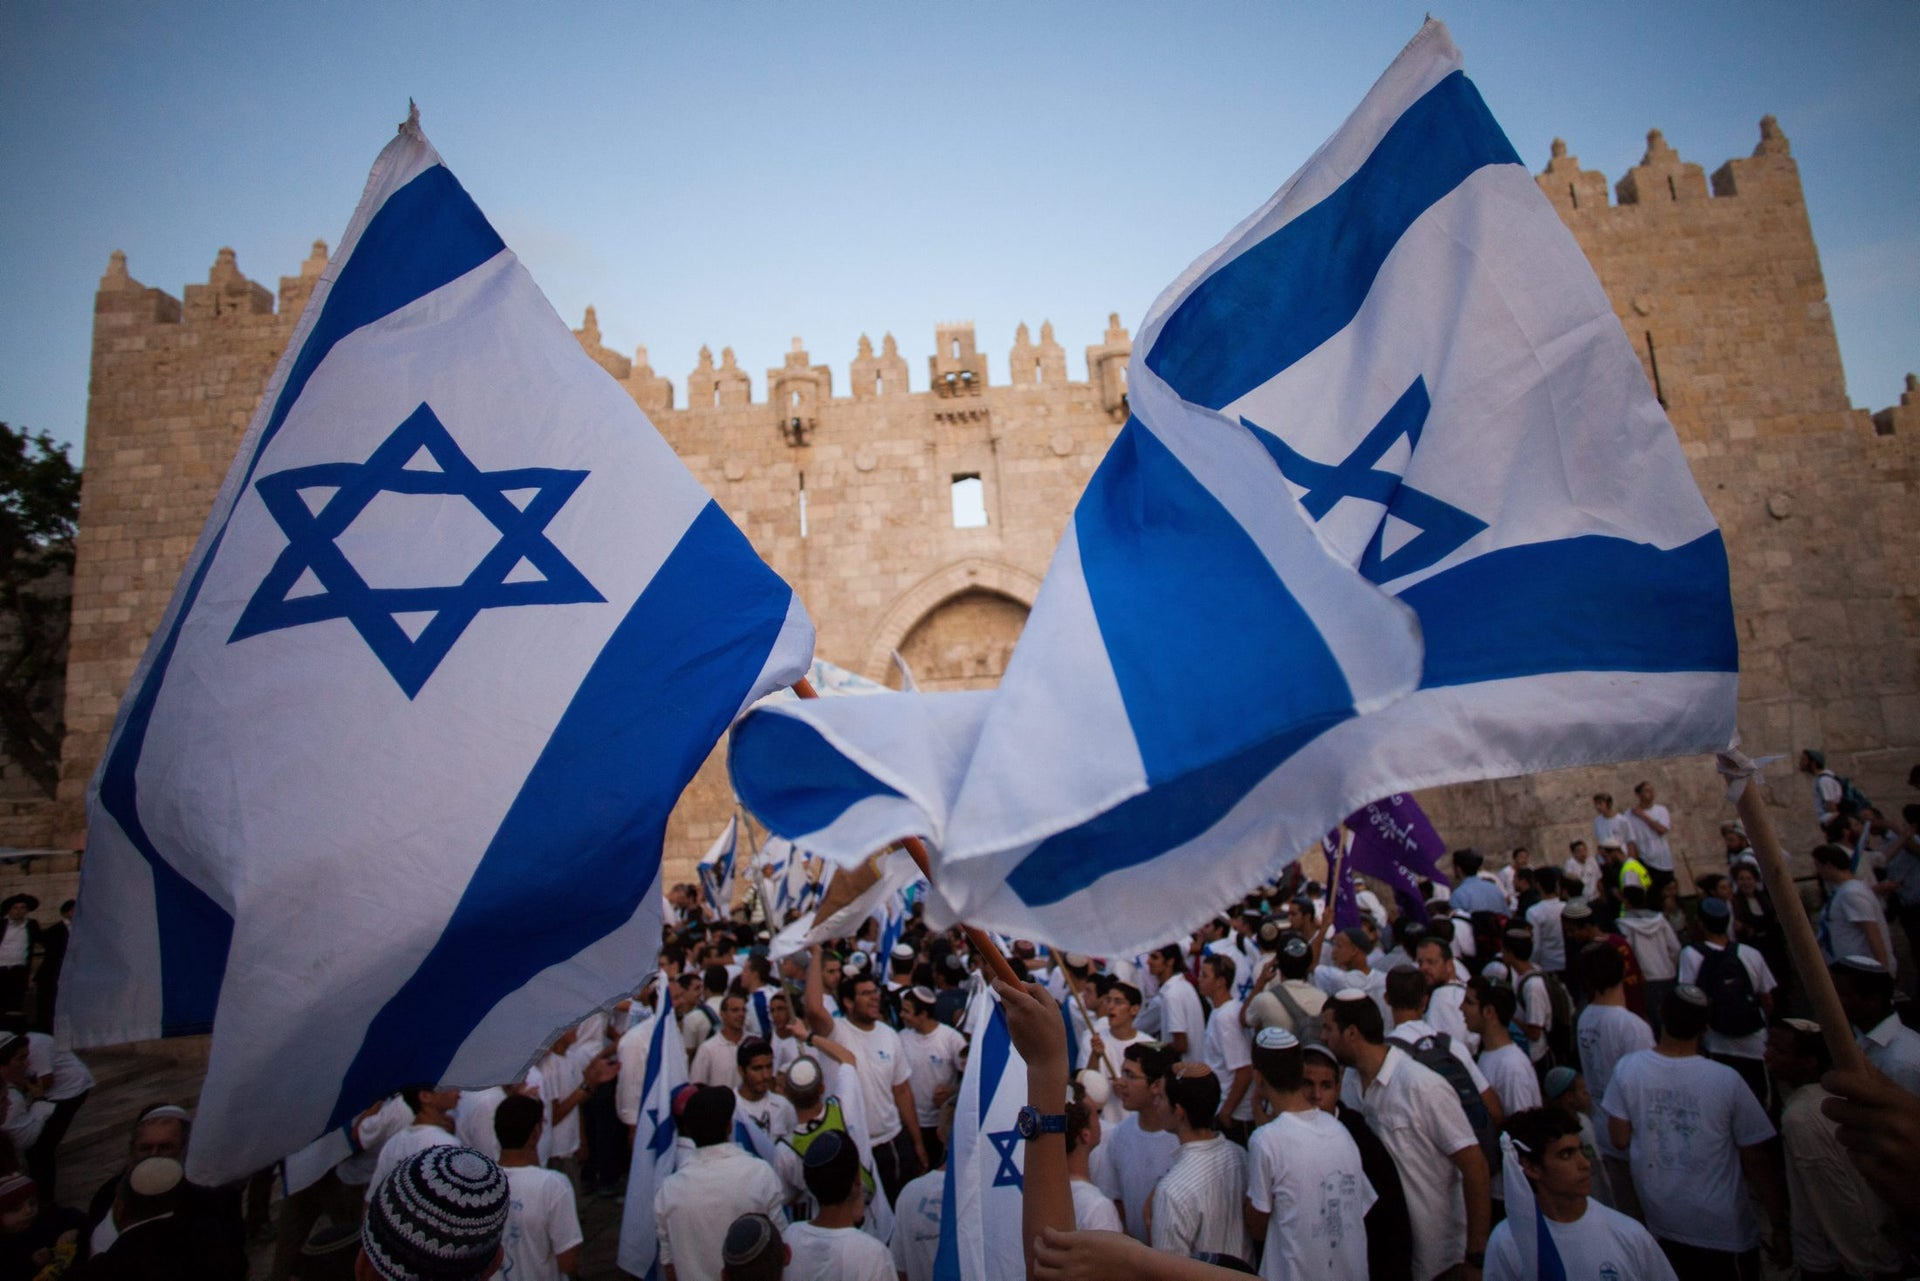 Jews wave Israeli flags outside the Old City's Damascus Gate as they partake in the so-called 'march of the flags' to celebrate Jerusalem Day in 2012.